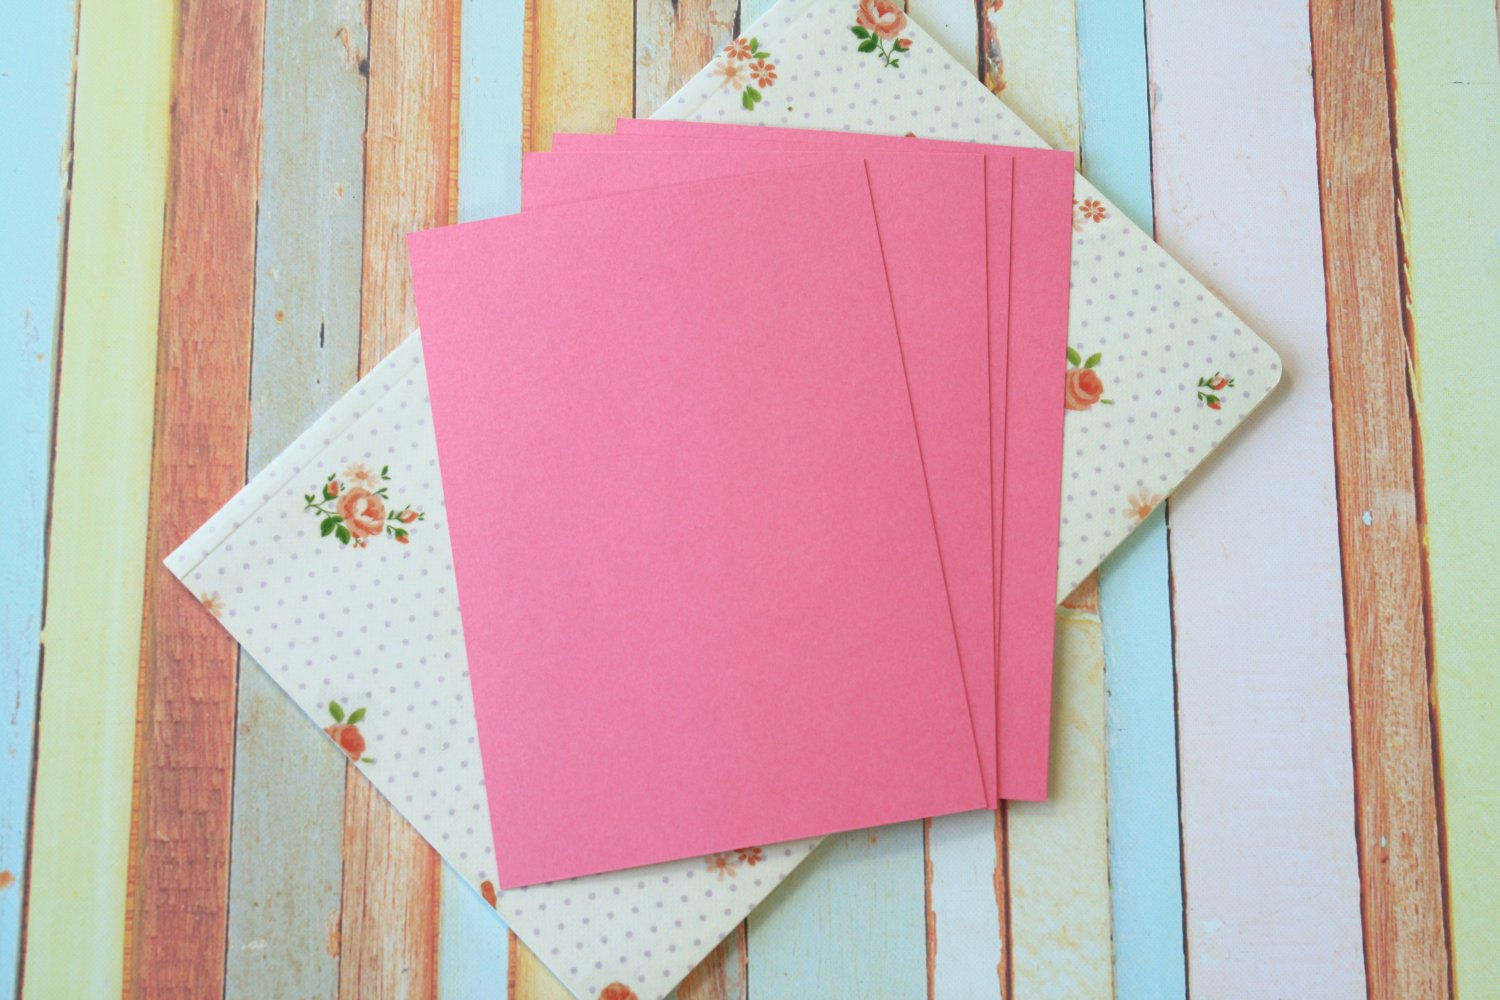 Cerise Pink Craft Style blank postcards